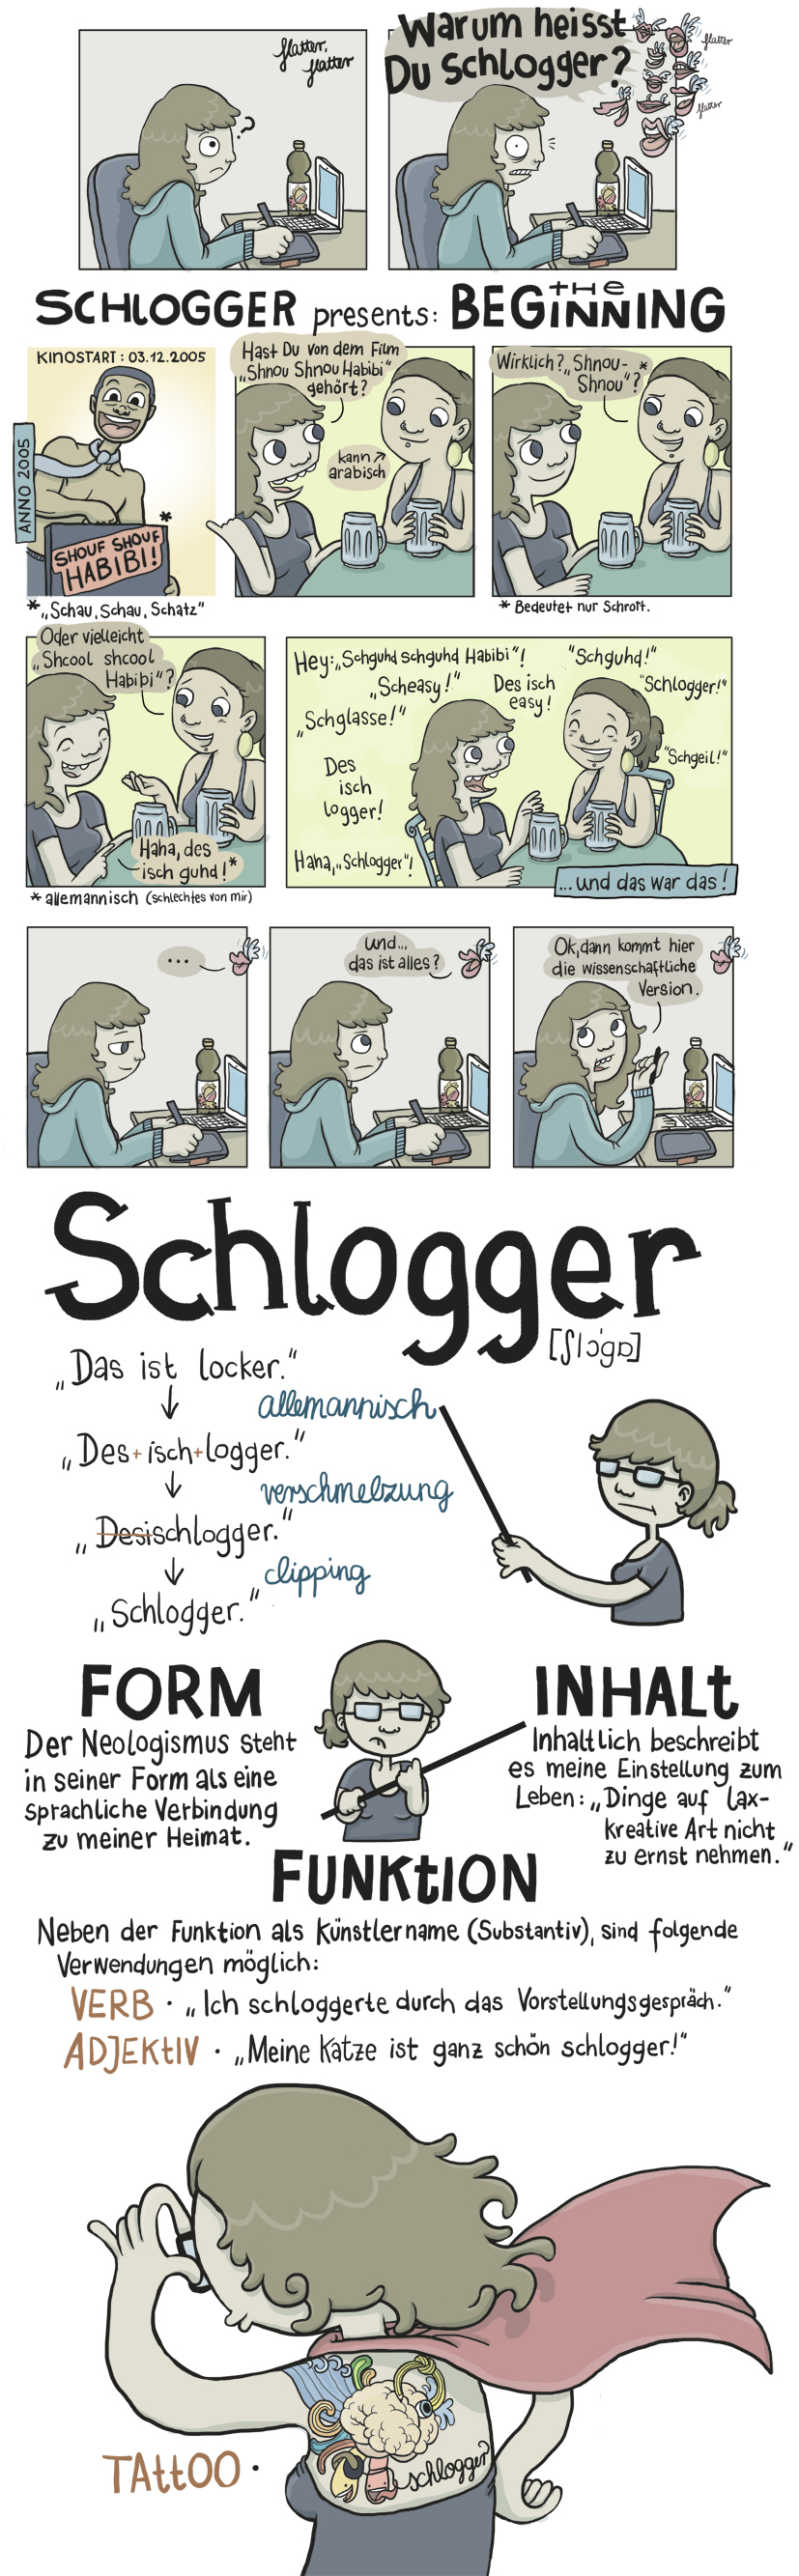 The beginning of Schlogger